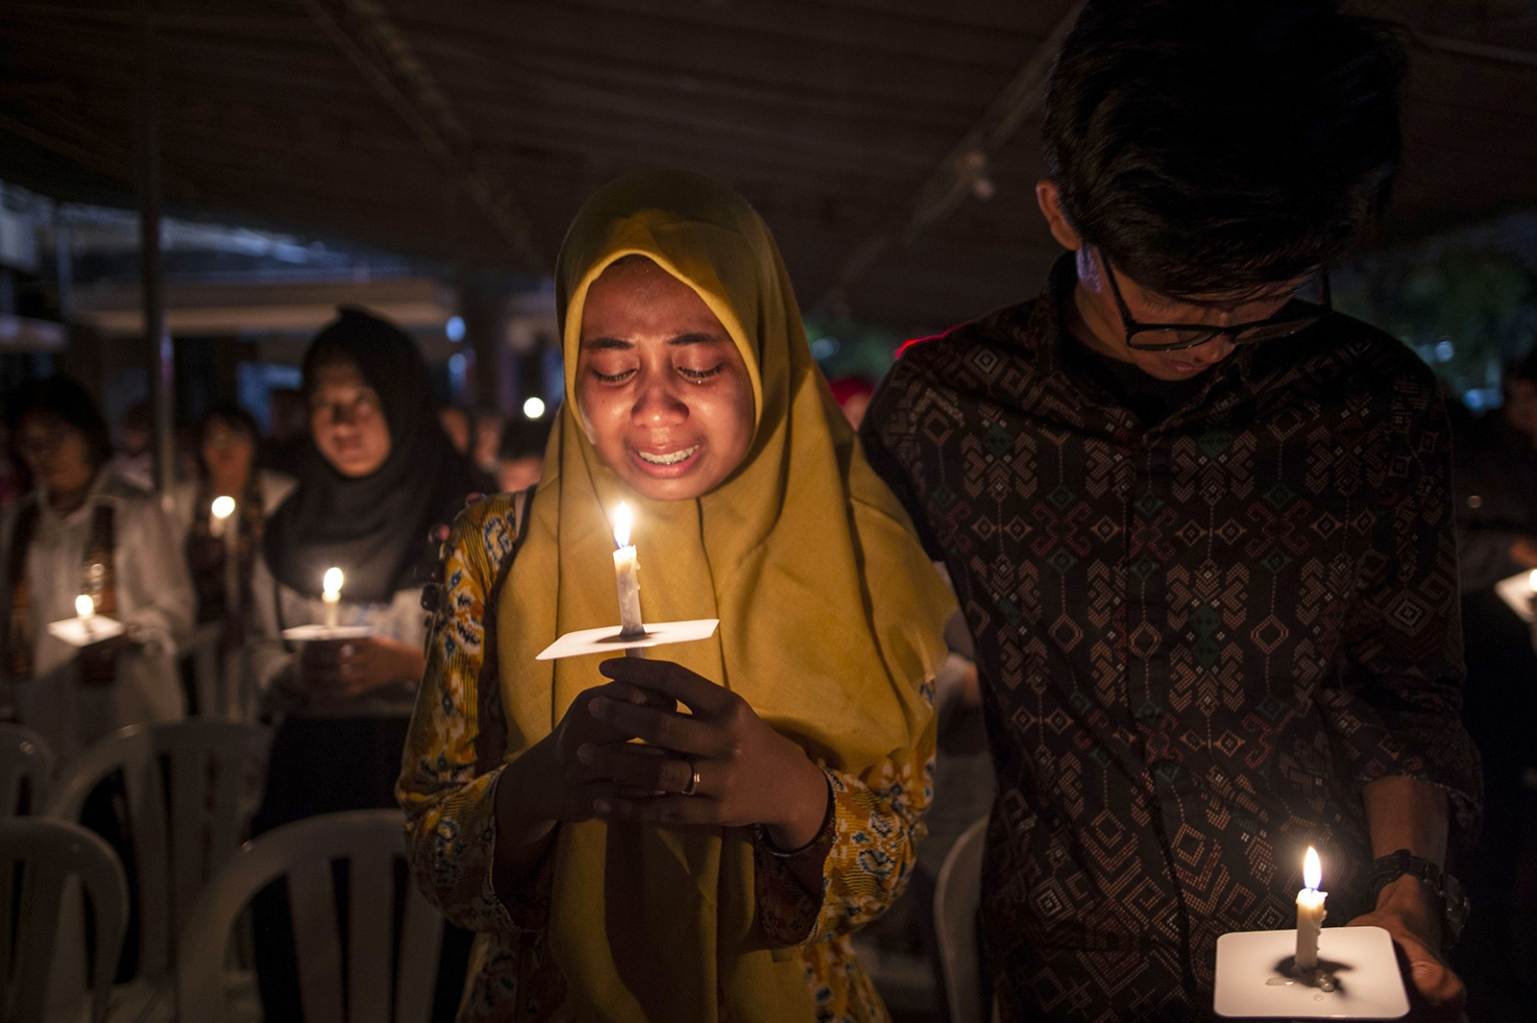 Indonesian Muslims gather during a candlelight vigil to remember the victims of deadly suicide bombings carried out one year ago, outside the Saint Mary Catholic Church in Surabaya on May 13. JUNI KRISWANTO/AFP/Getty Images